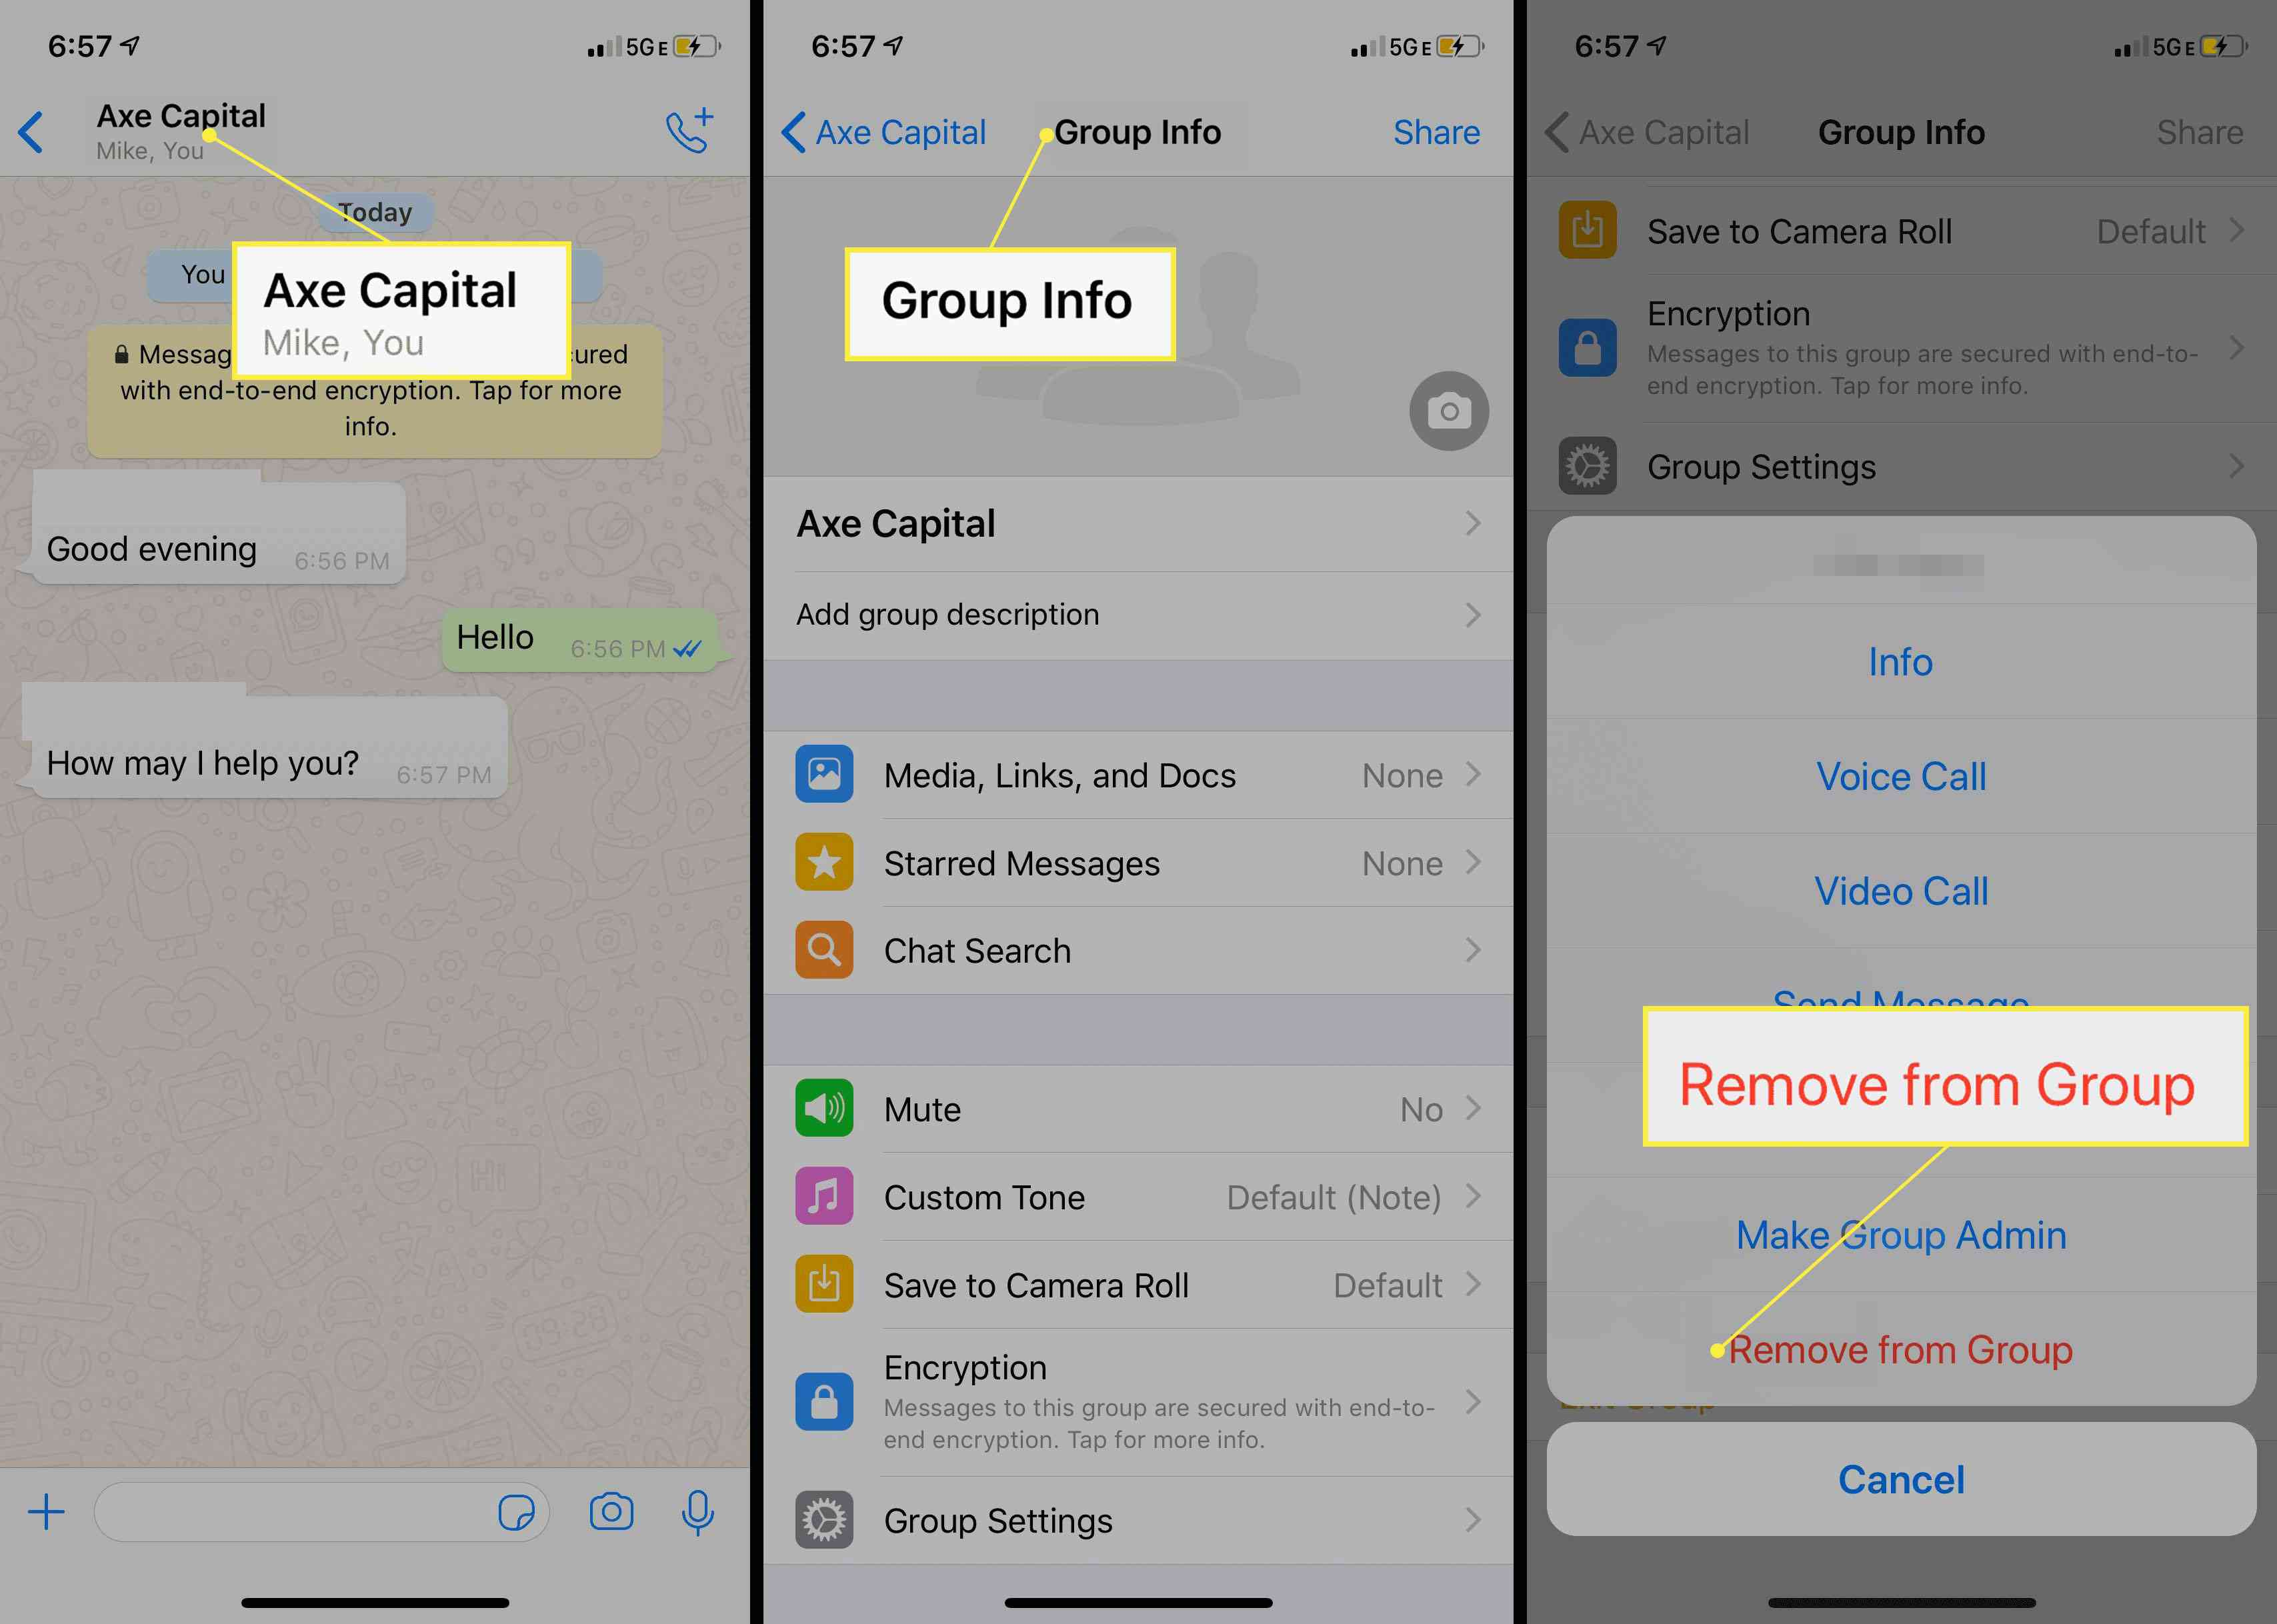 Removing a group on WhatsApp